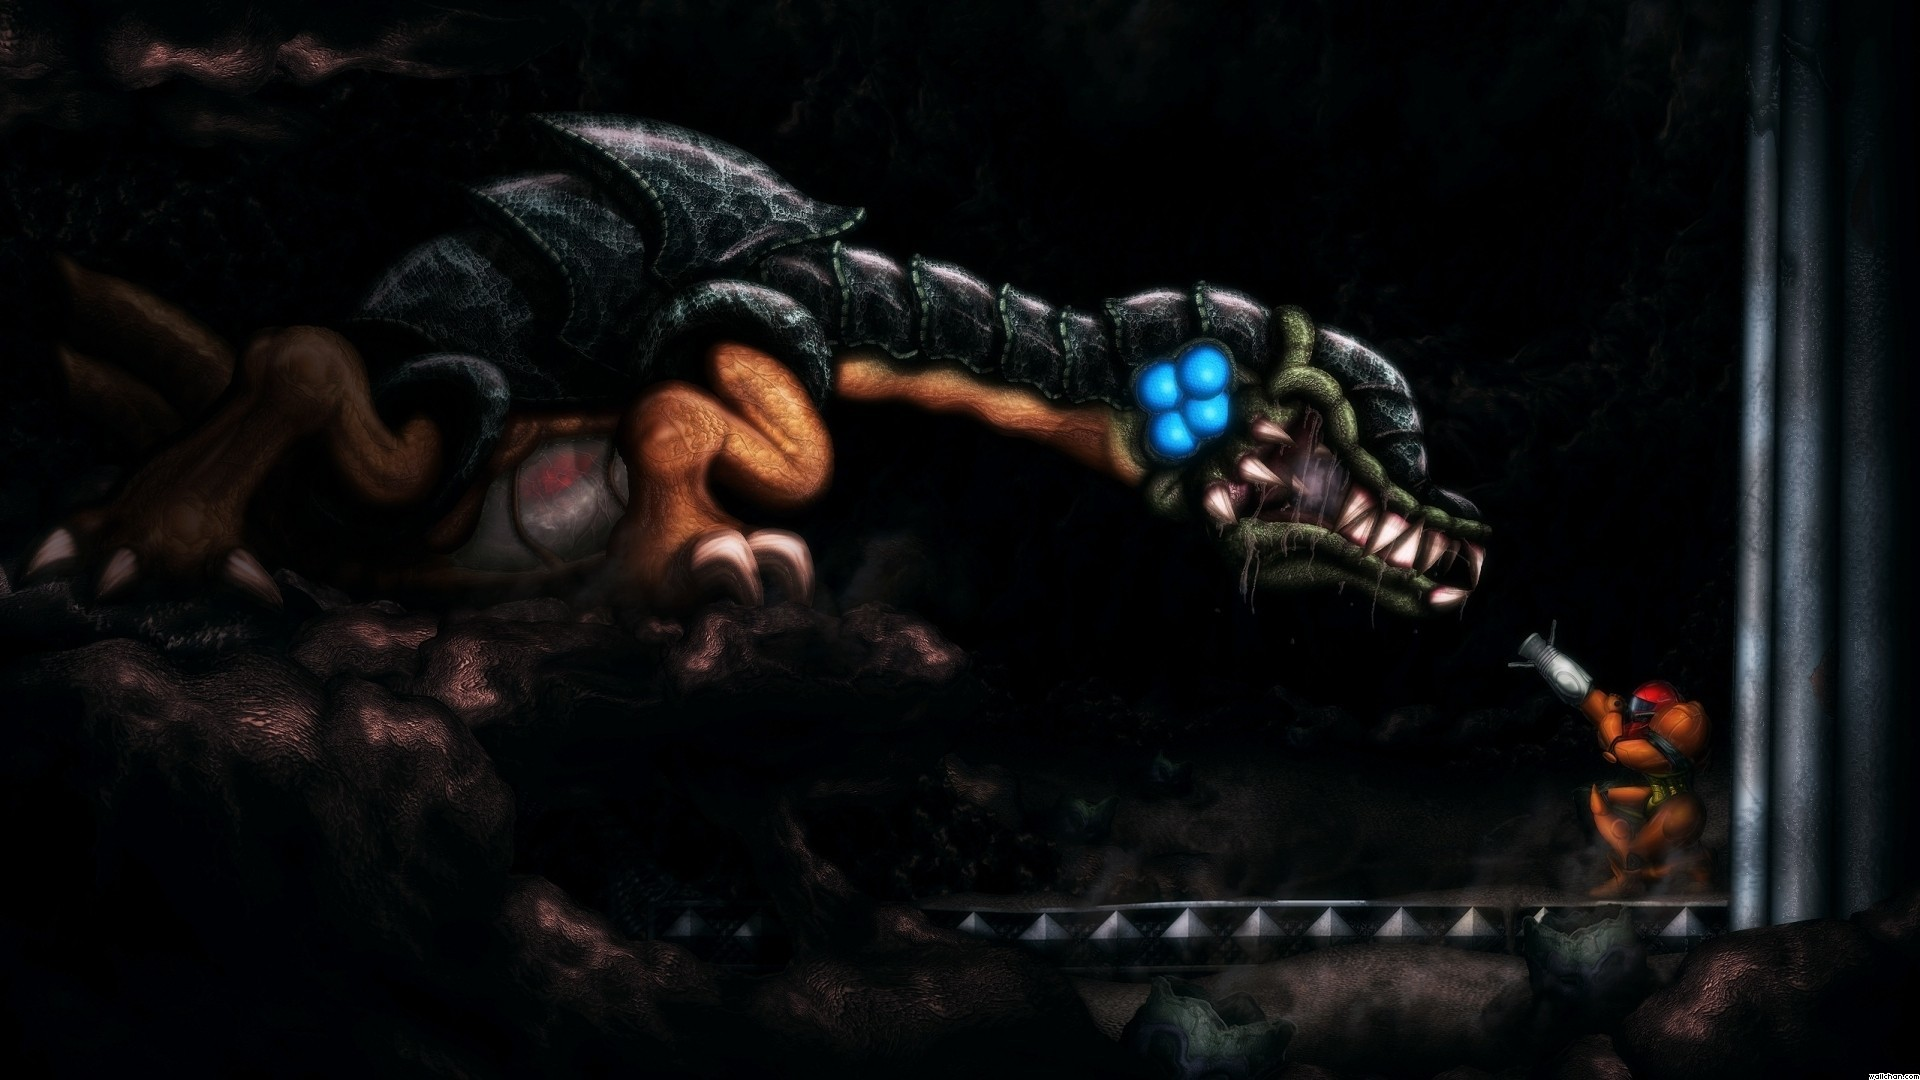 1920x1080 6 Metroid II: Return of Samus HD Wallpapers | Backgrounds - Wallpaper Abyss